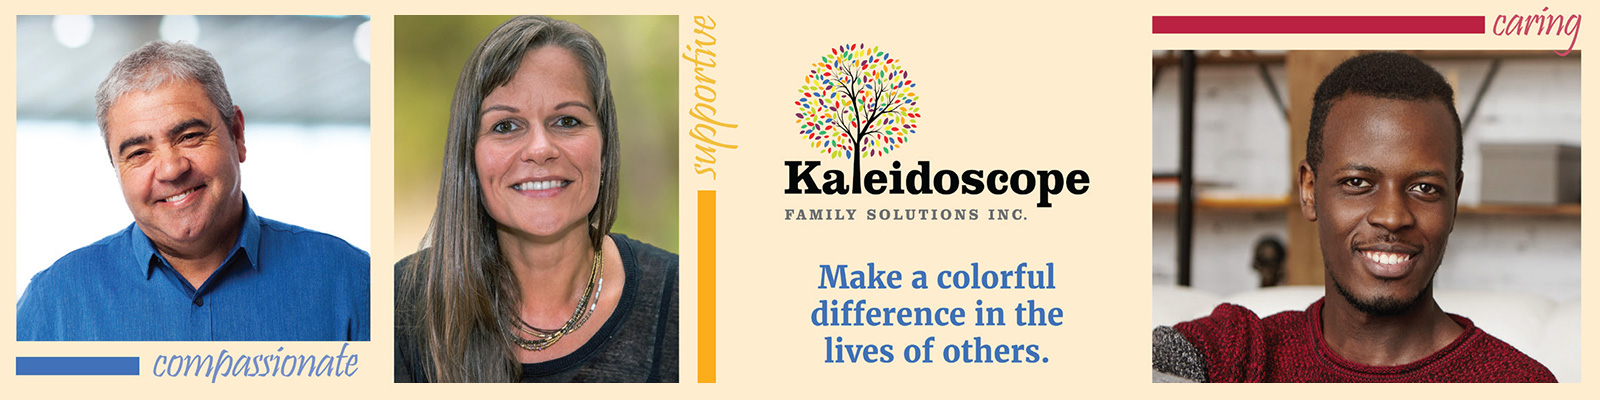 Kaleidoscope Family Solutions Inc - Direct Support Staff banner image